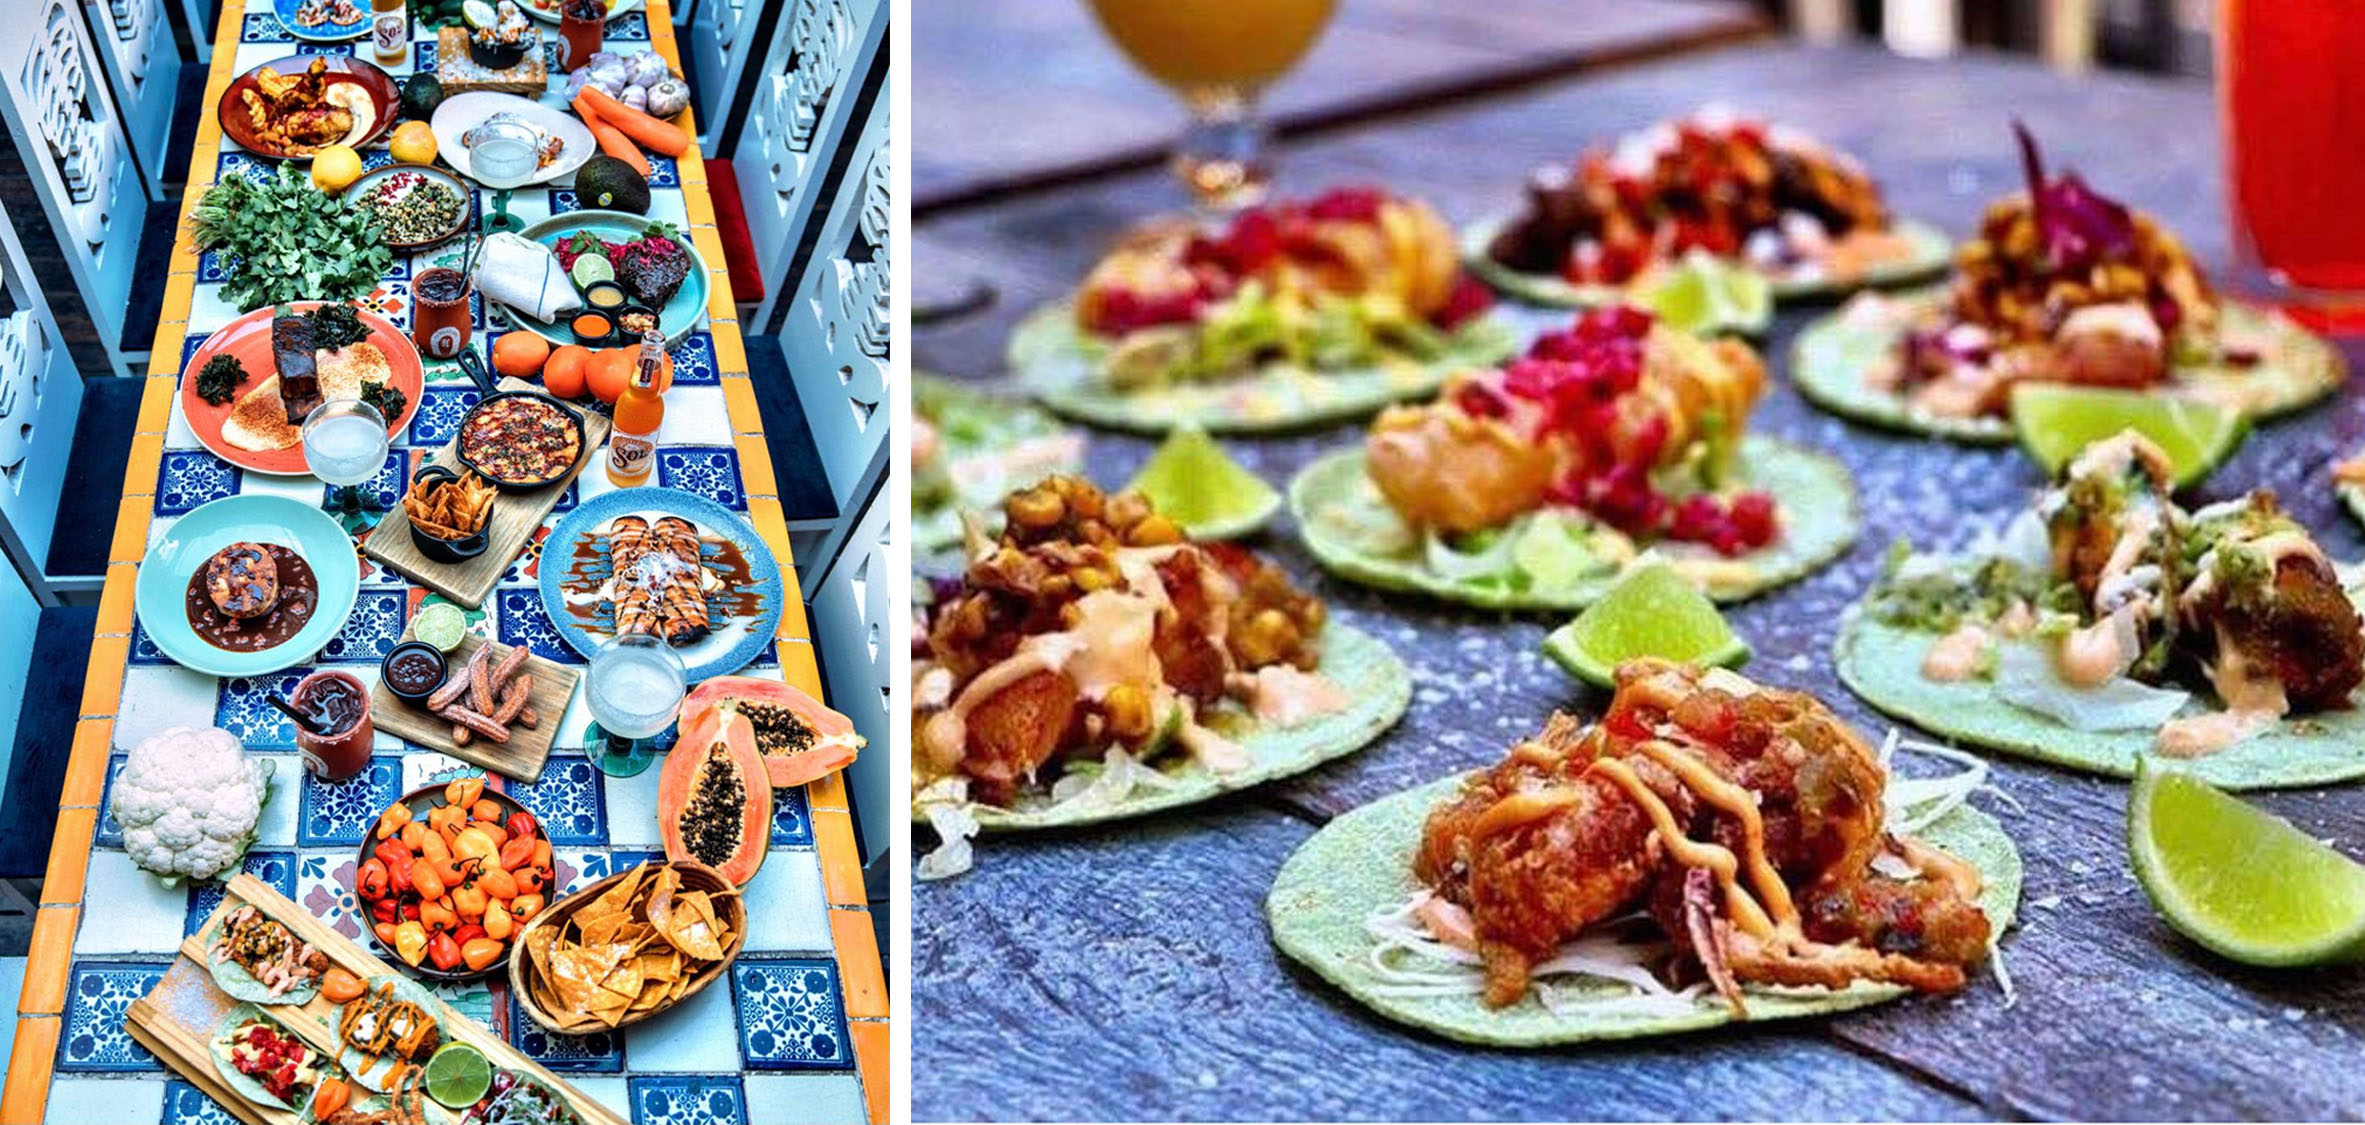 Easily the most photogenic of the taco joint family. With a lively rooftop, vegetarian and gluten-free options, plus over 80 types of tequila, you're surely in for a treat. The menu boasts authentic Mexican cuisine inspired by the colourful region of Oaxaca.   Location:  The Eastern Hotel, 500 Oxford Street, Bondi Junction